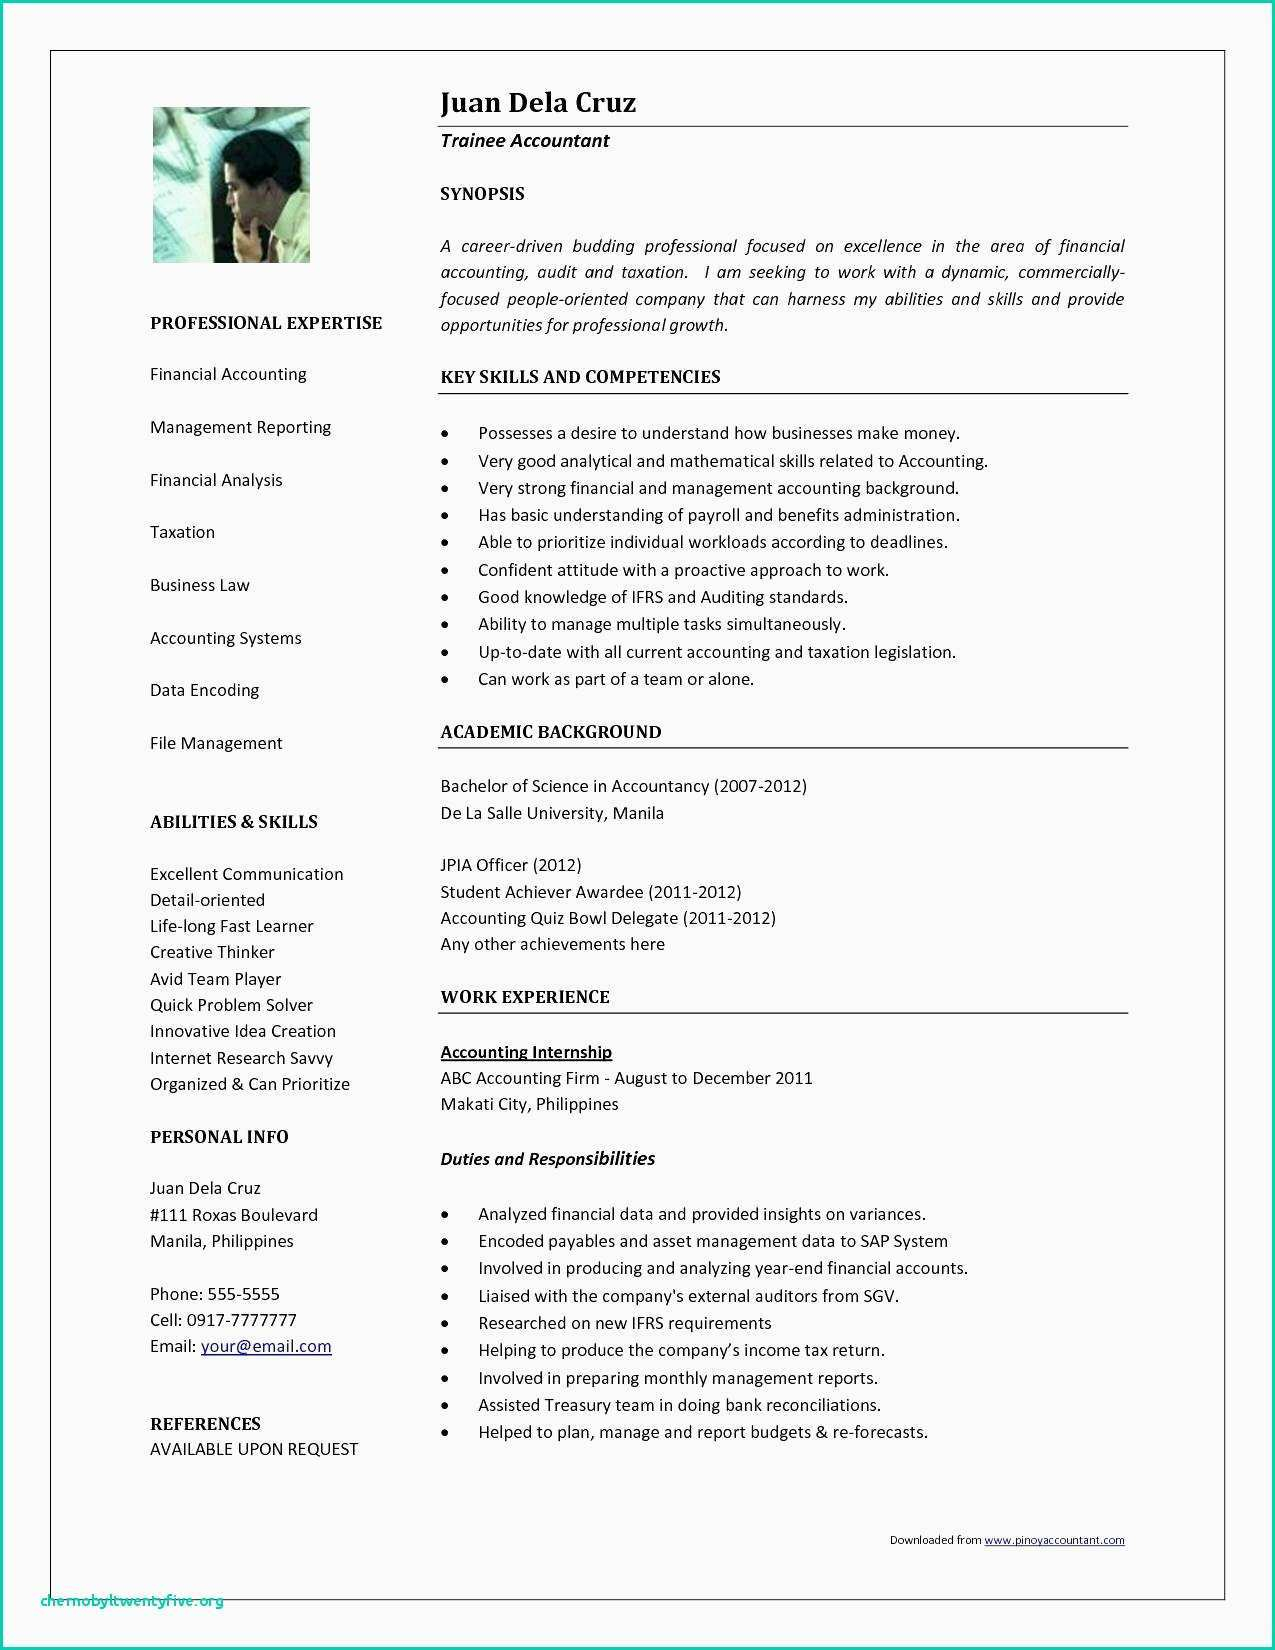 Account Payable Resume Template - Accounts Payable Resume Fresh Resume for Cna Elegant Rn Bsn Resume